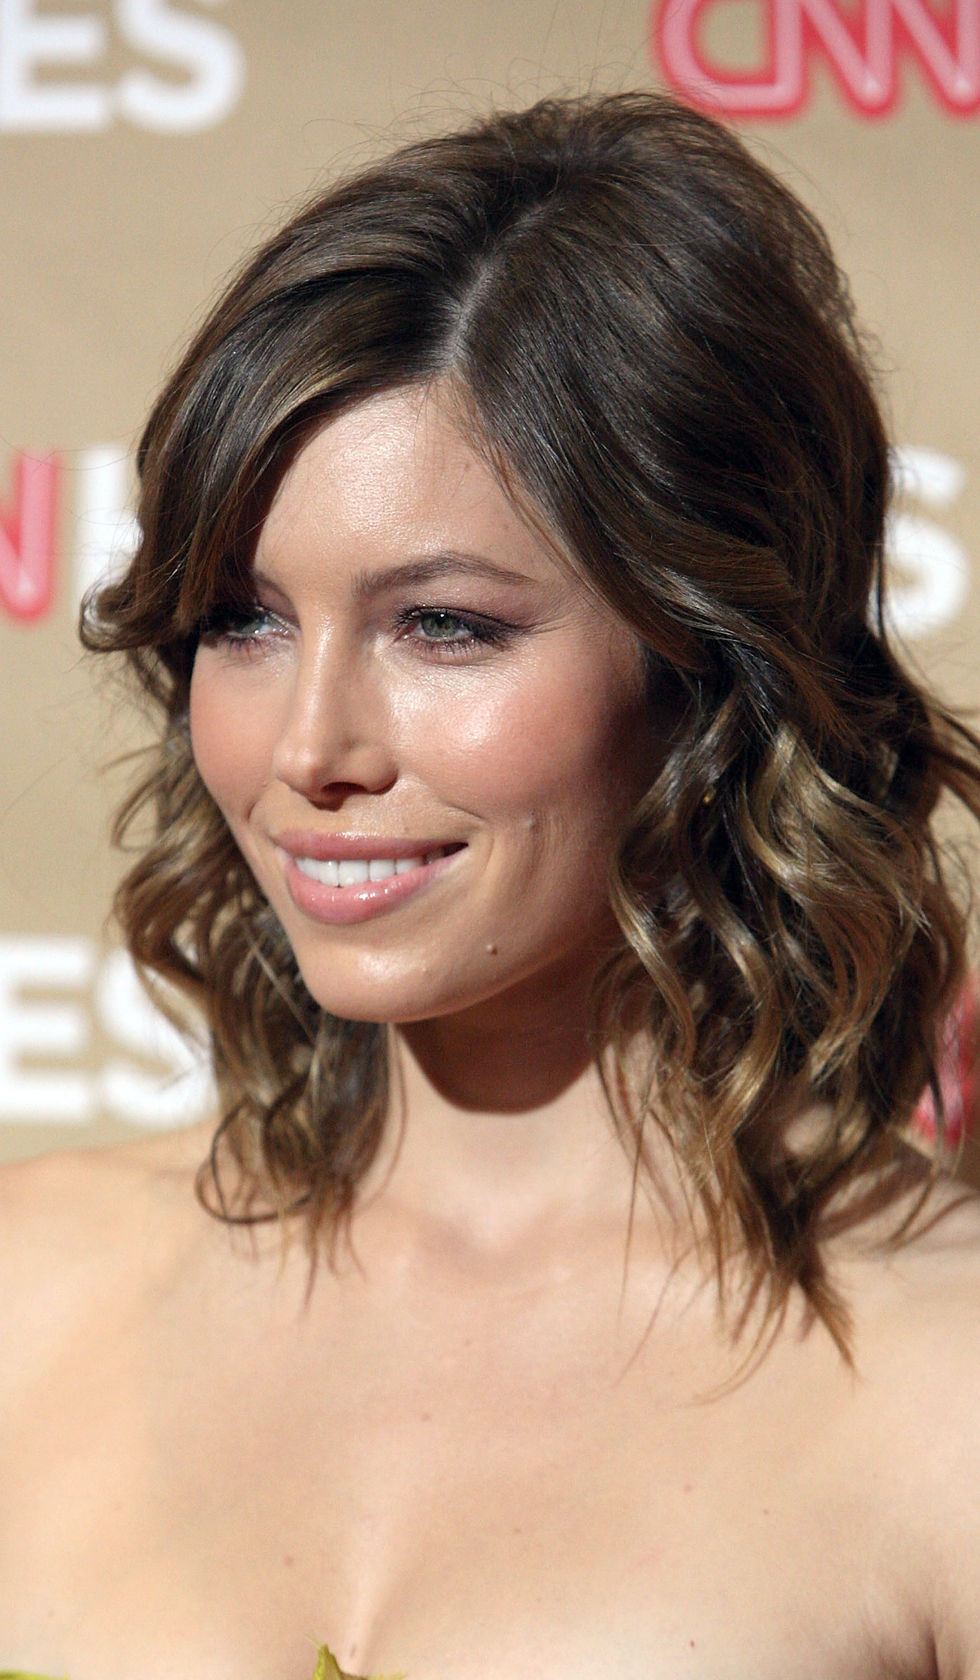 jessica-biel-second-annual-cnn-heroes-an-all-star-tribute-in-hollywood-01